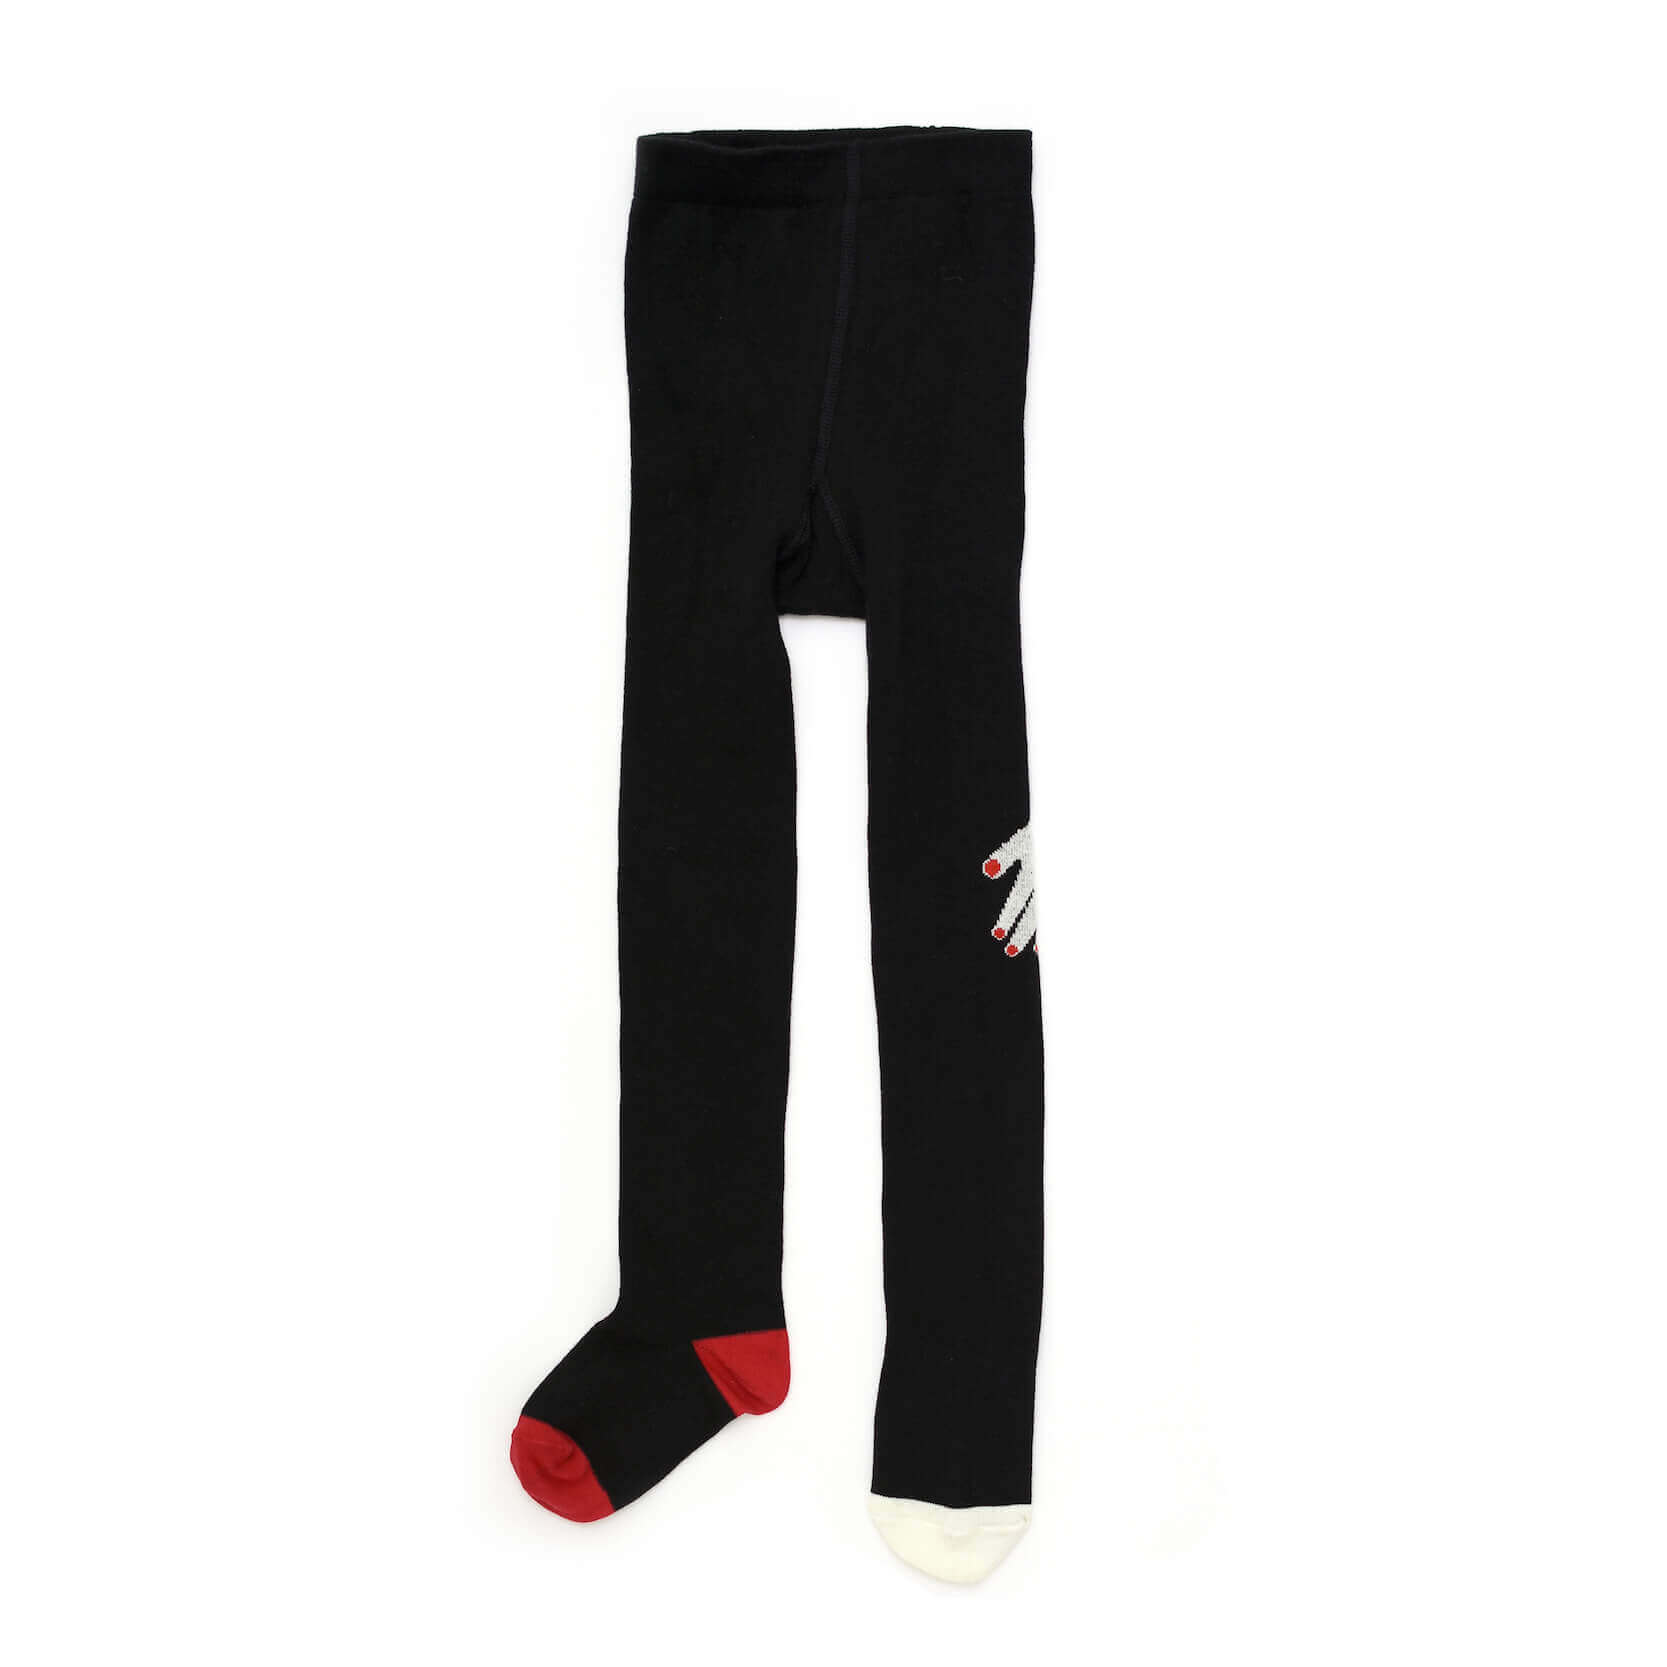 unisex kids tights